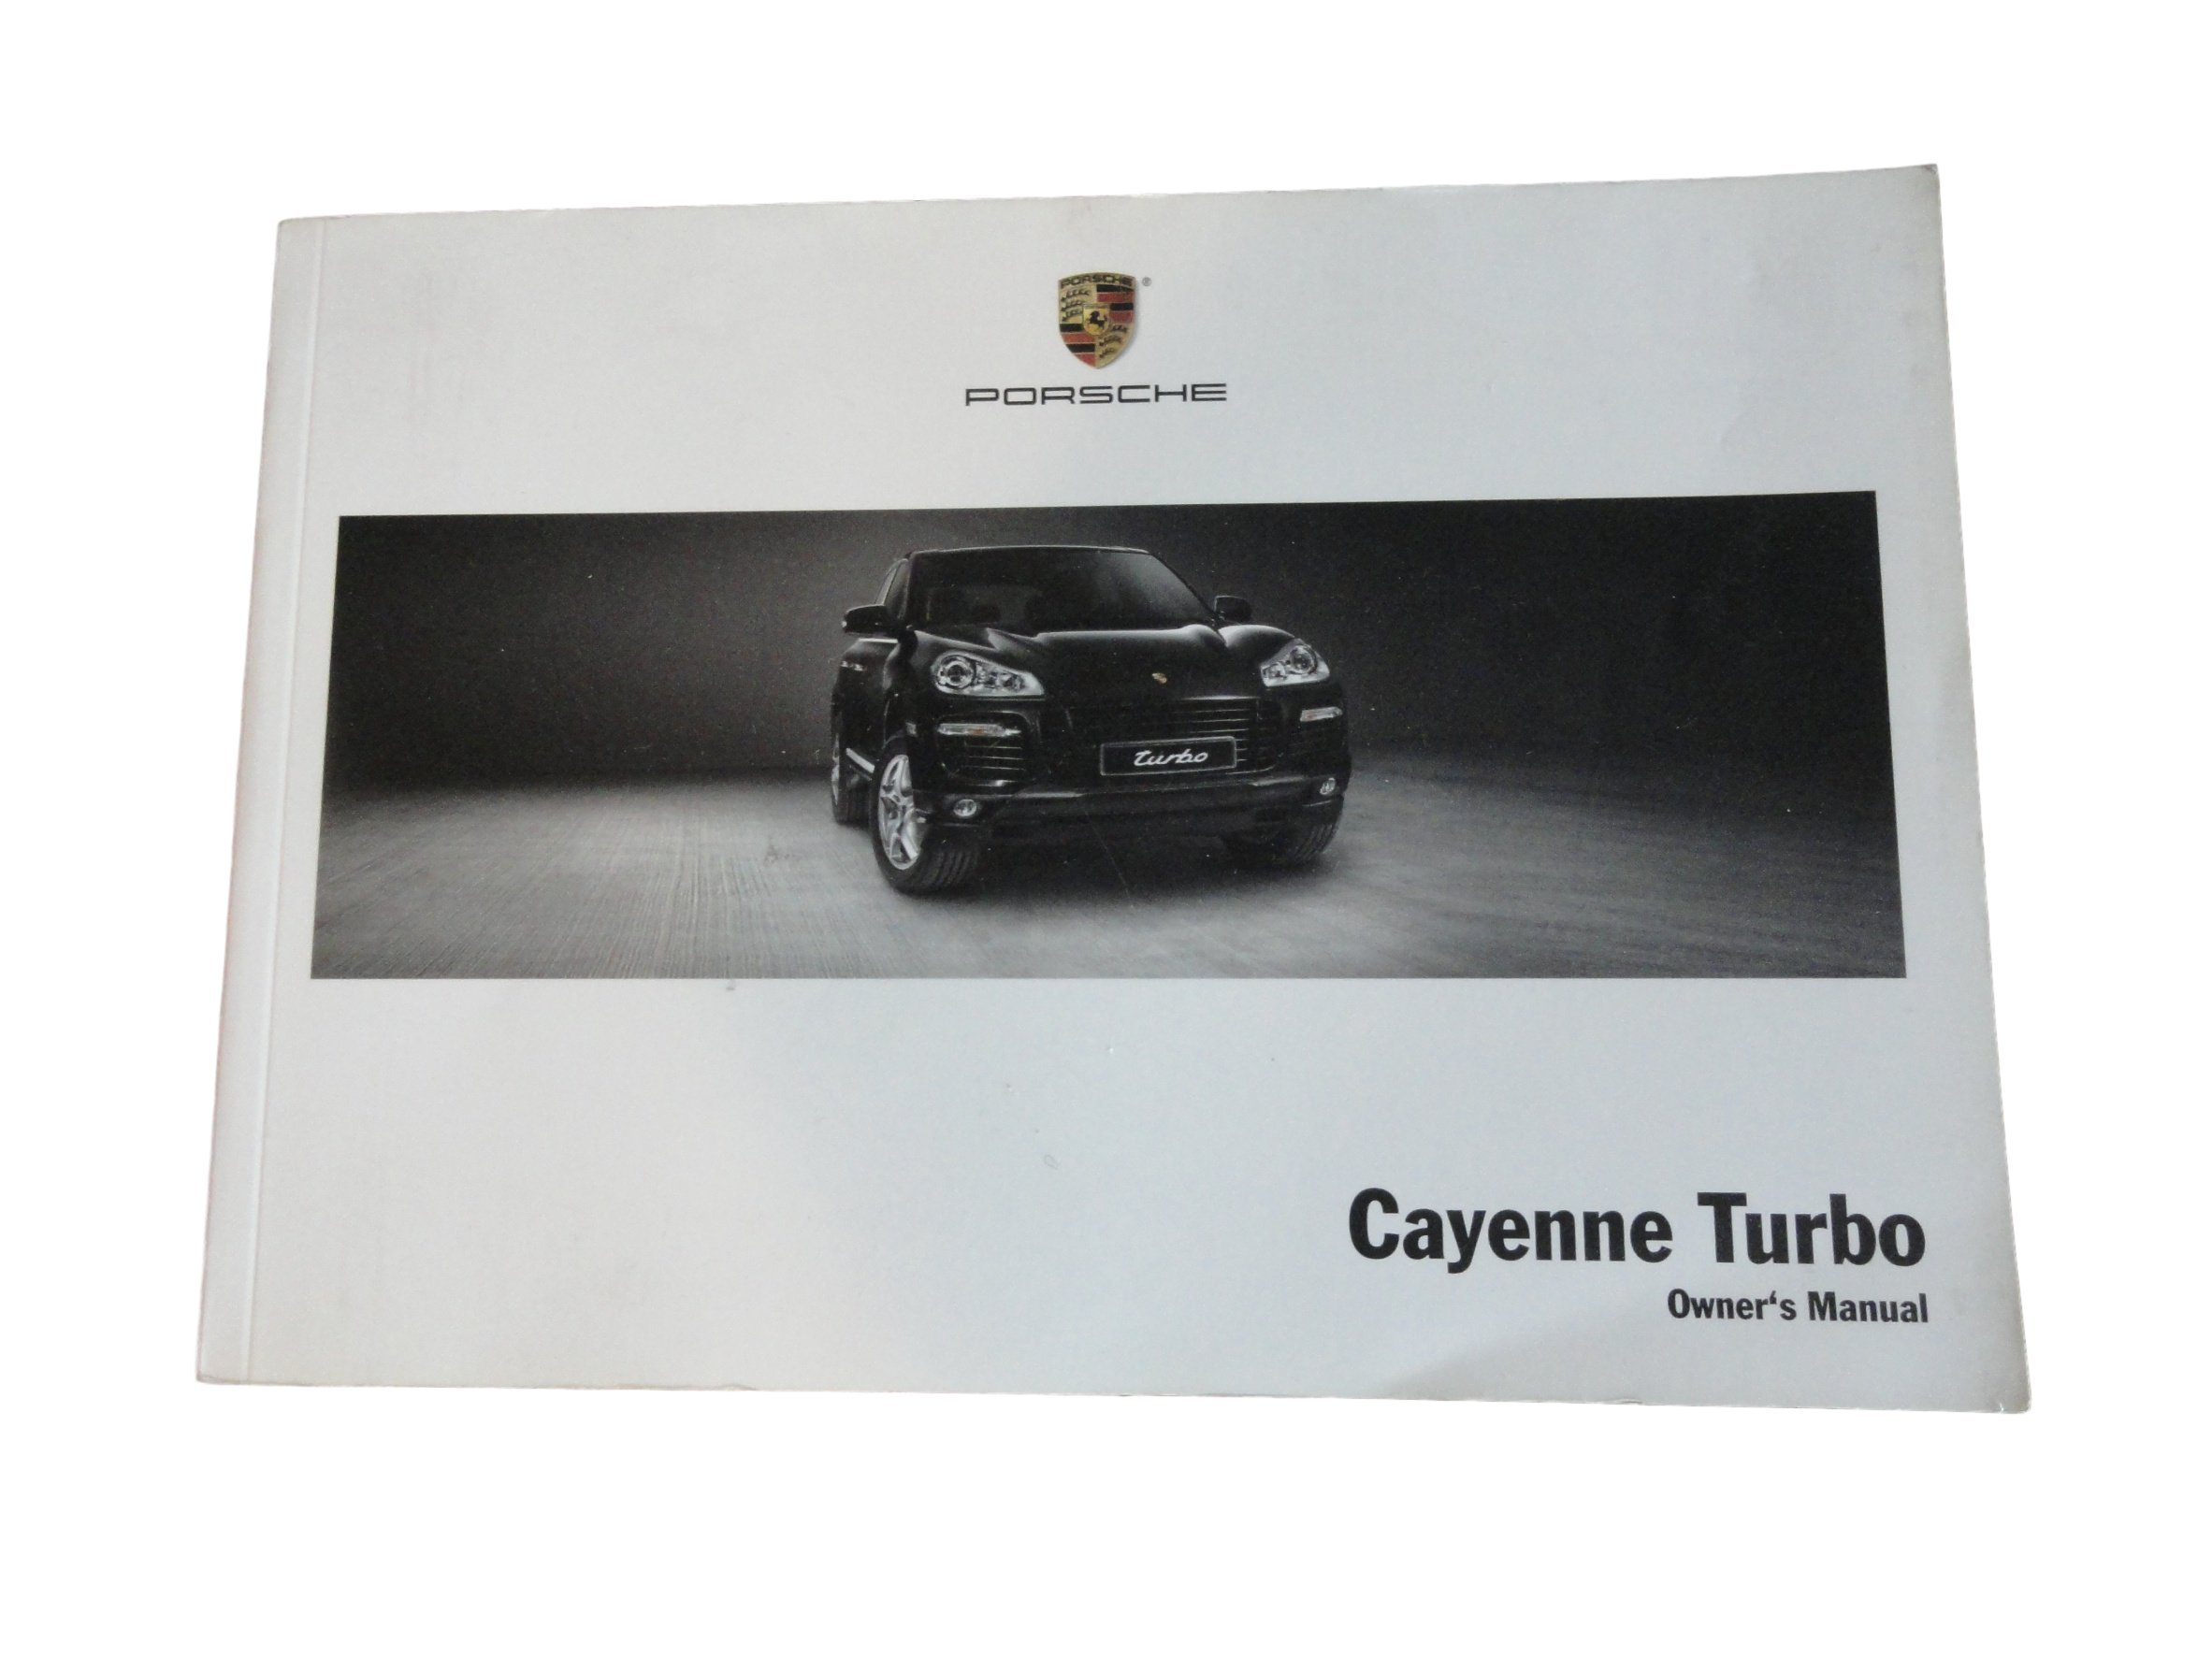 2008 Porsche Cayenne Turbo Owners Manual Paperback – 2008